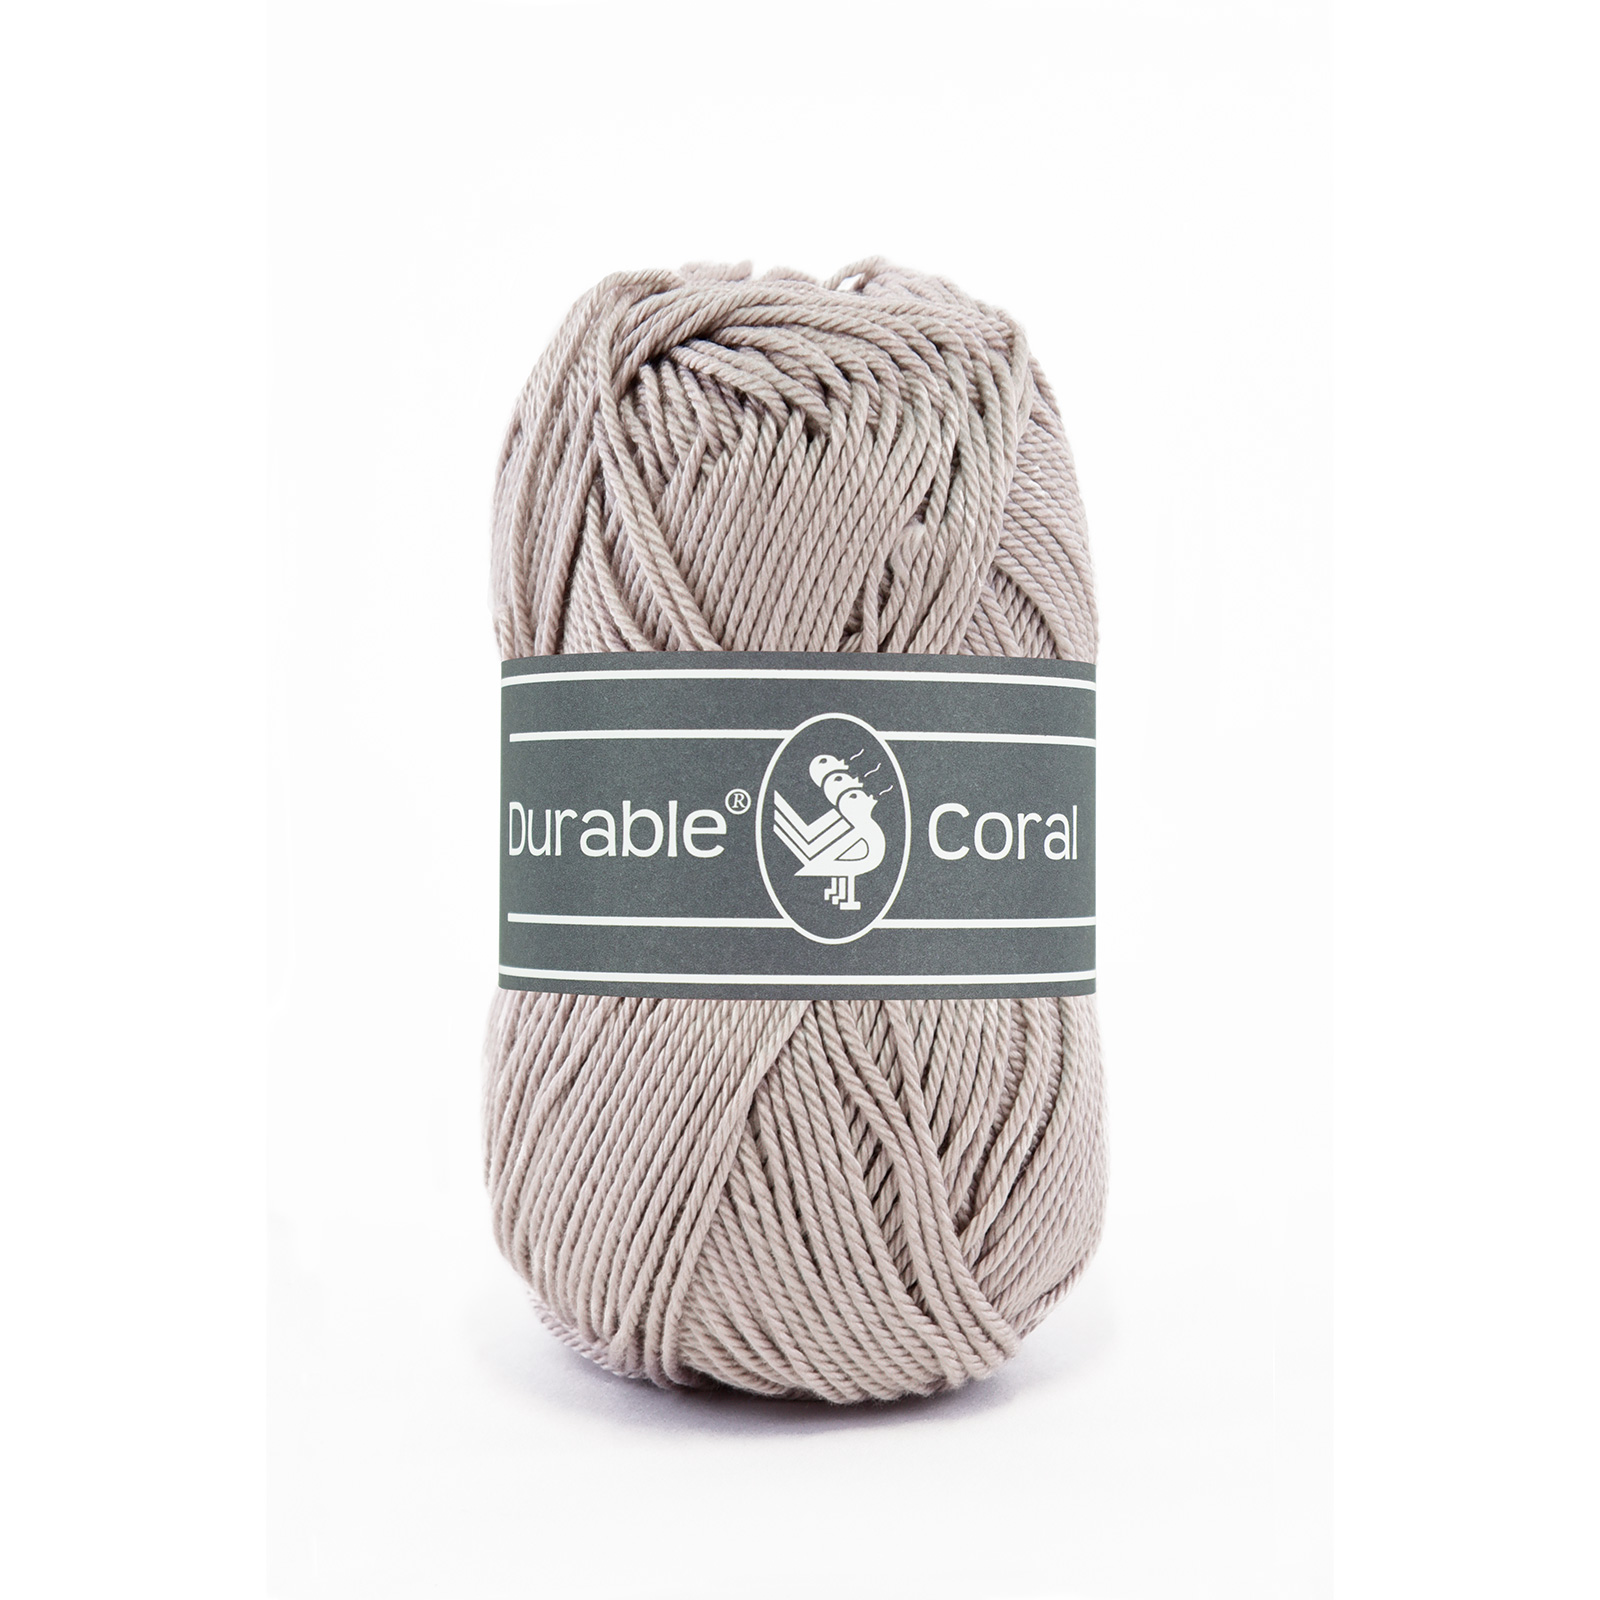 Durable Coral – 340 Taupe